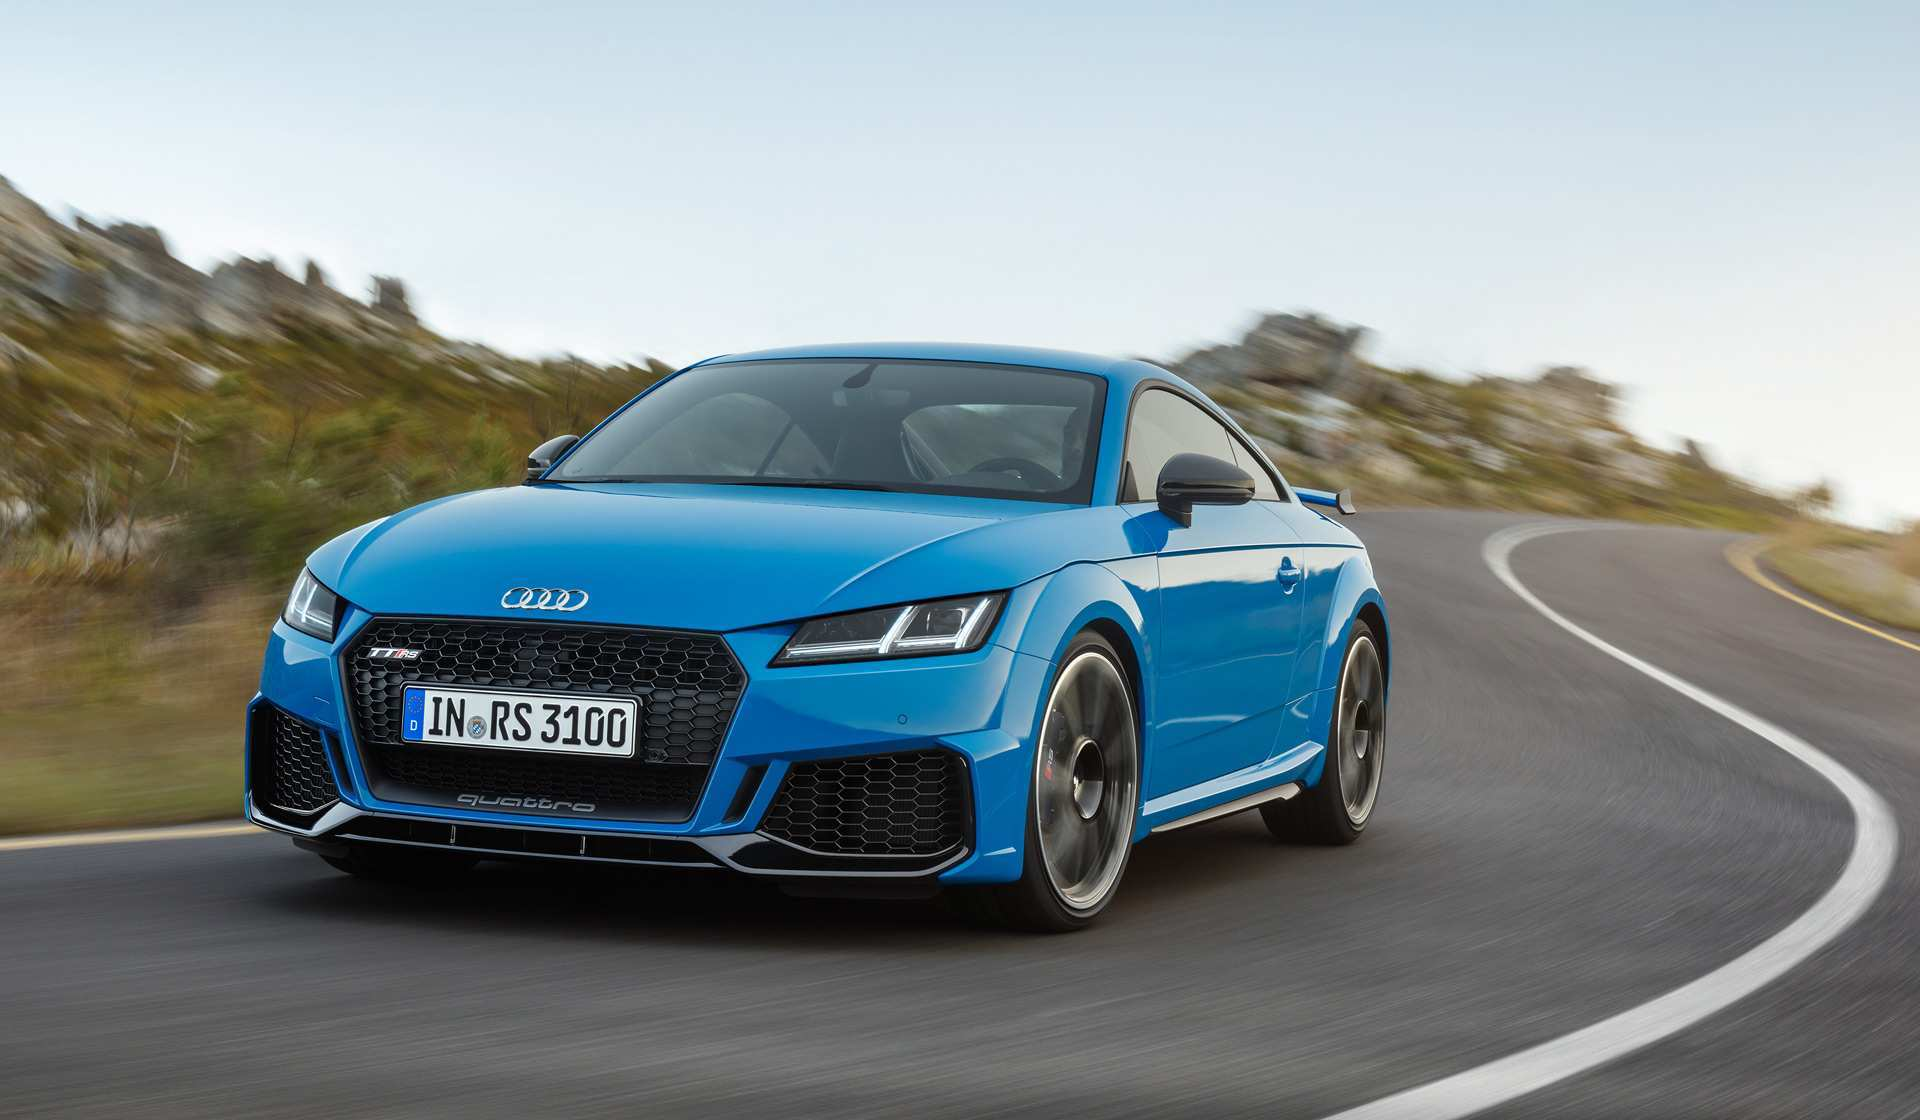 86 New New Audi Tt Rs Plus 2019 Price And Review Exterior and Interior for New Audi Tt Rs Plus 2019 Price And Review